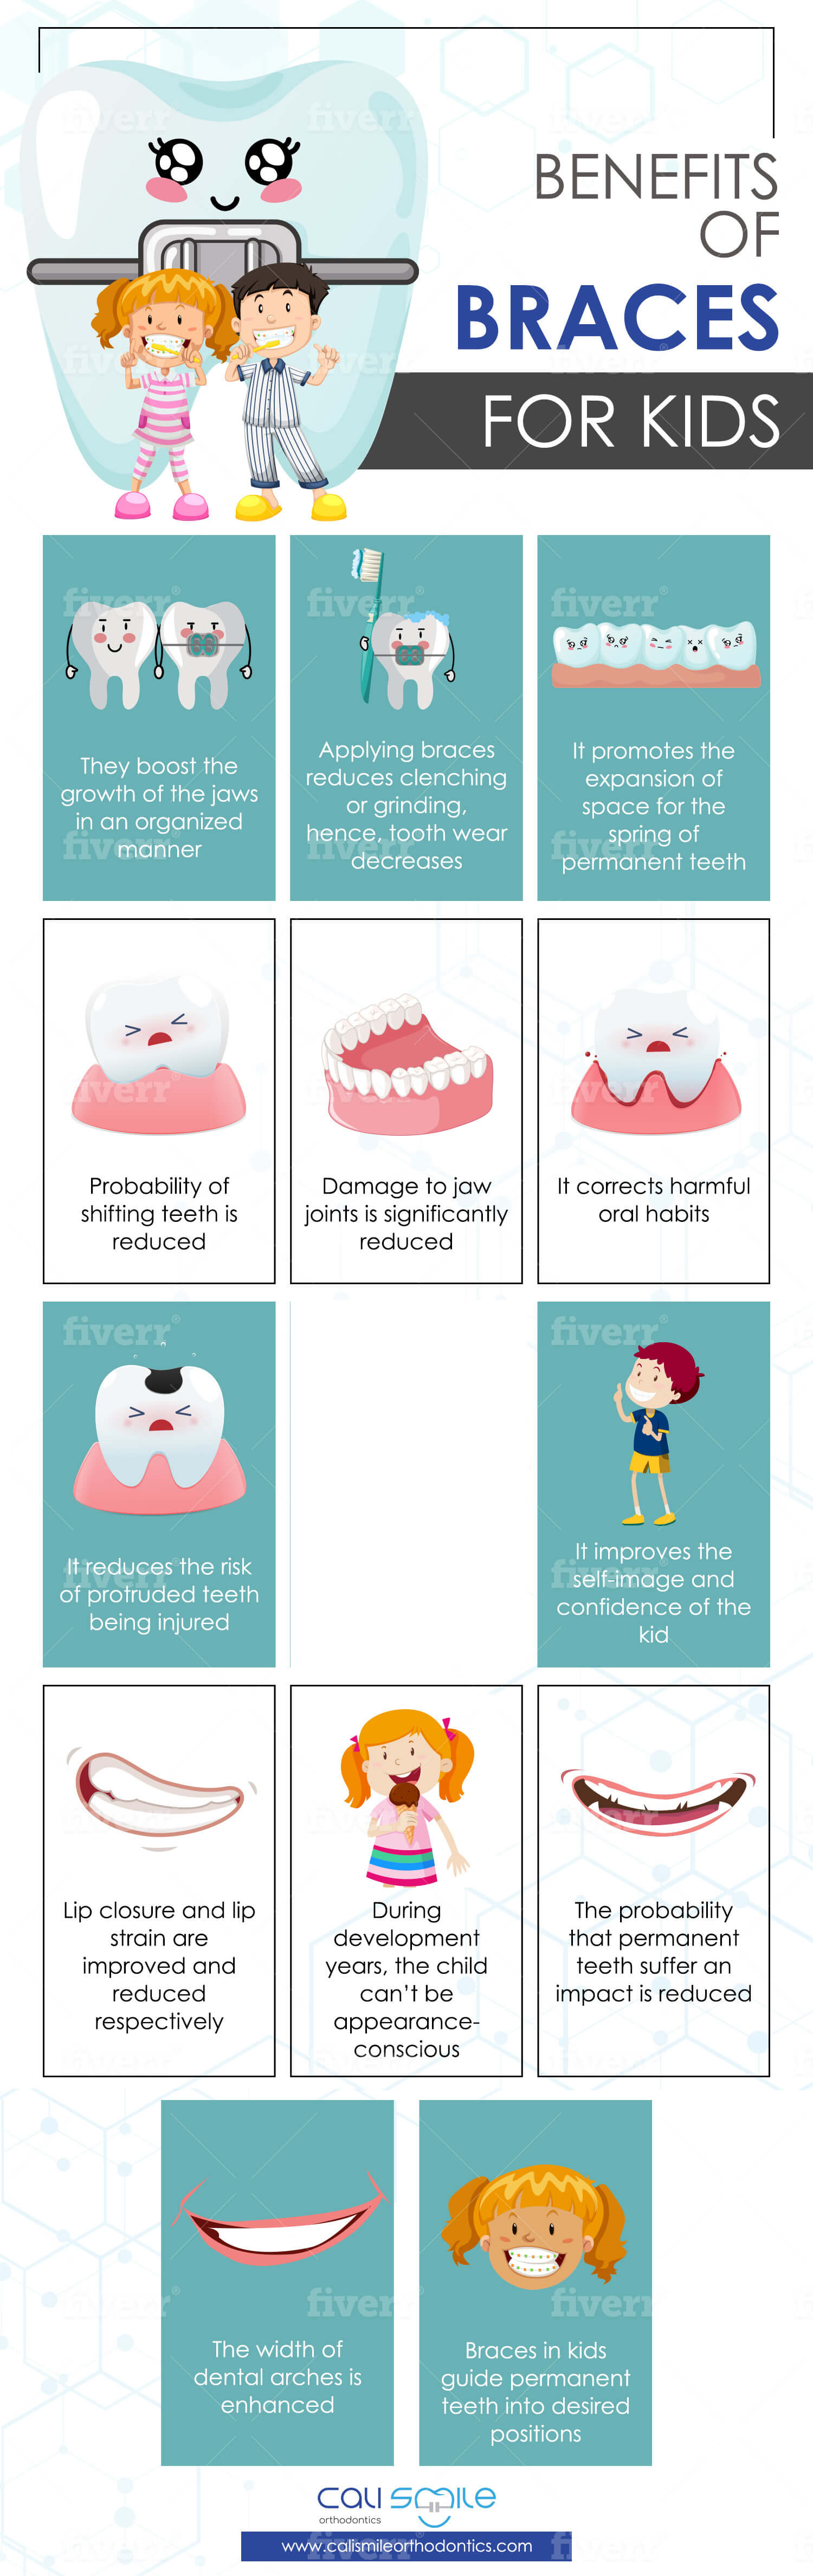 Benefits of Braces for Kids